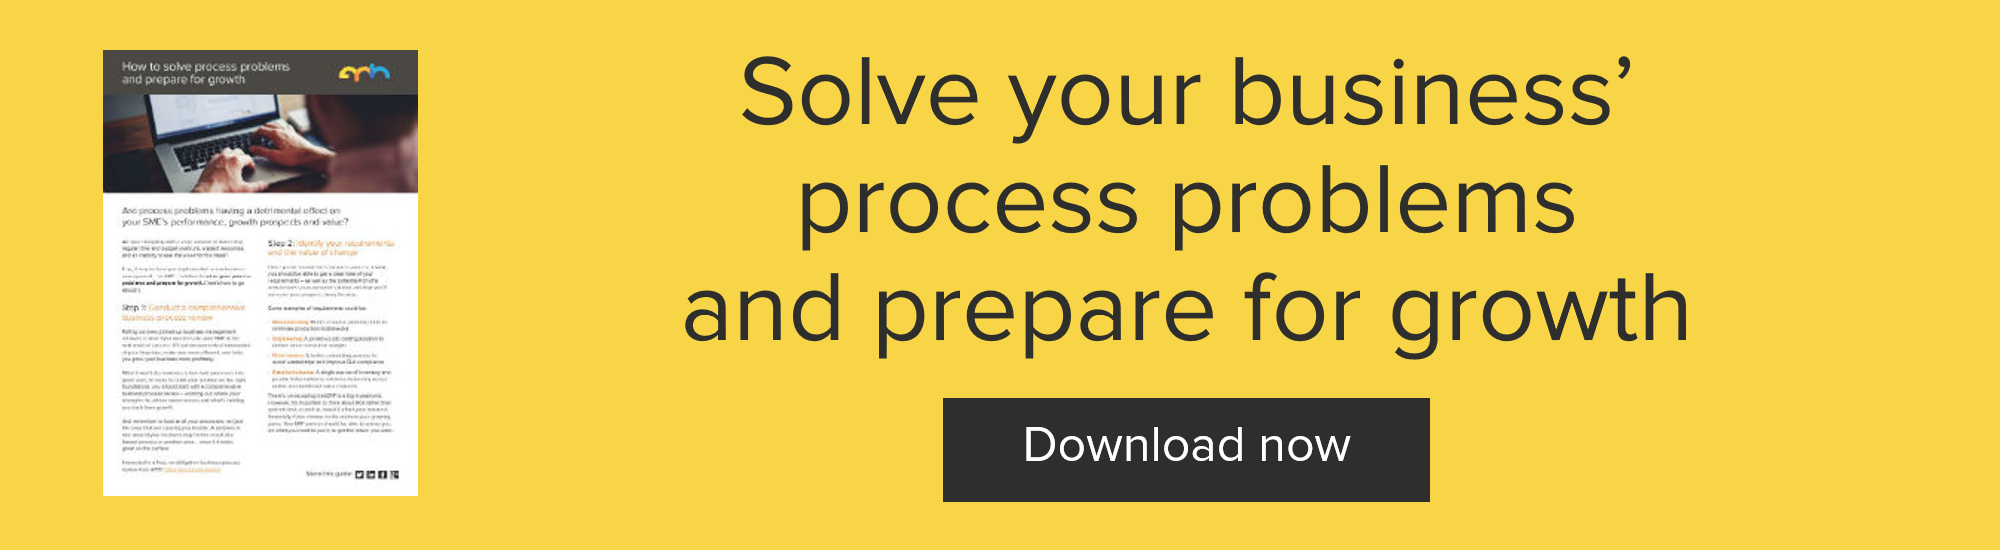 Solve your business' process problems and prepare for growth